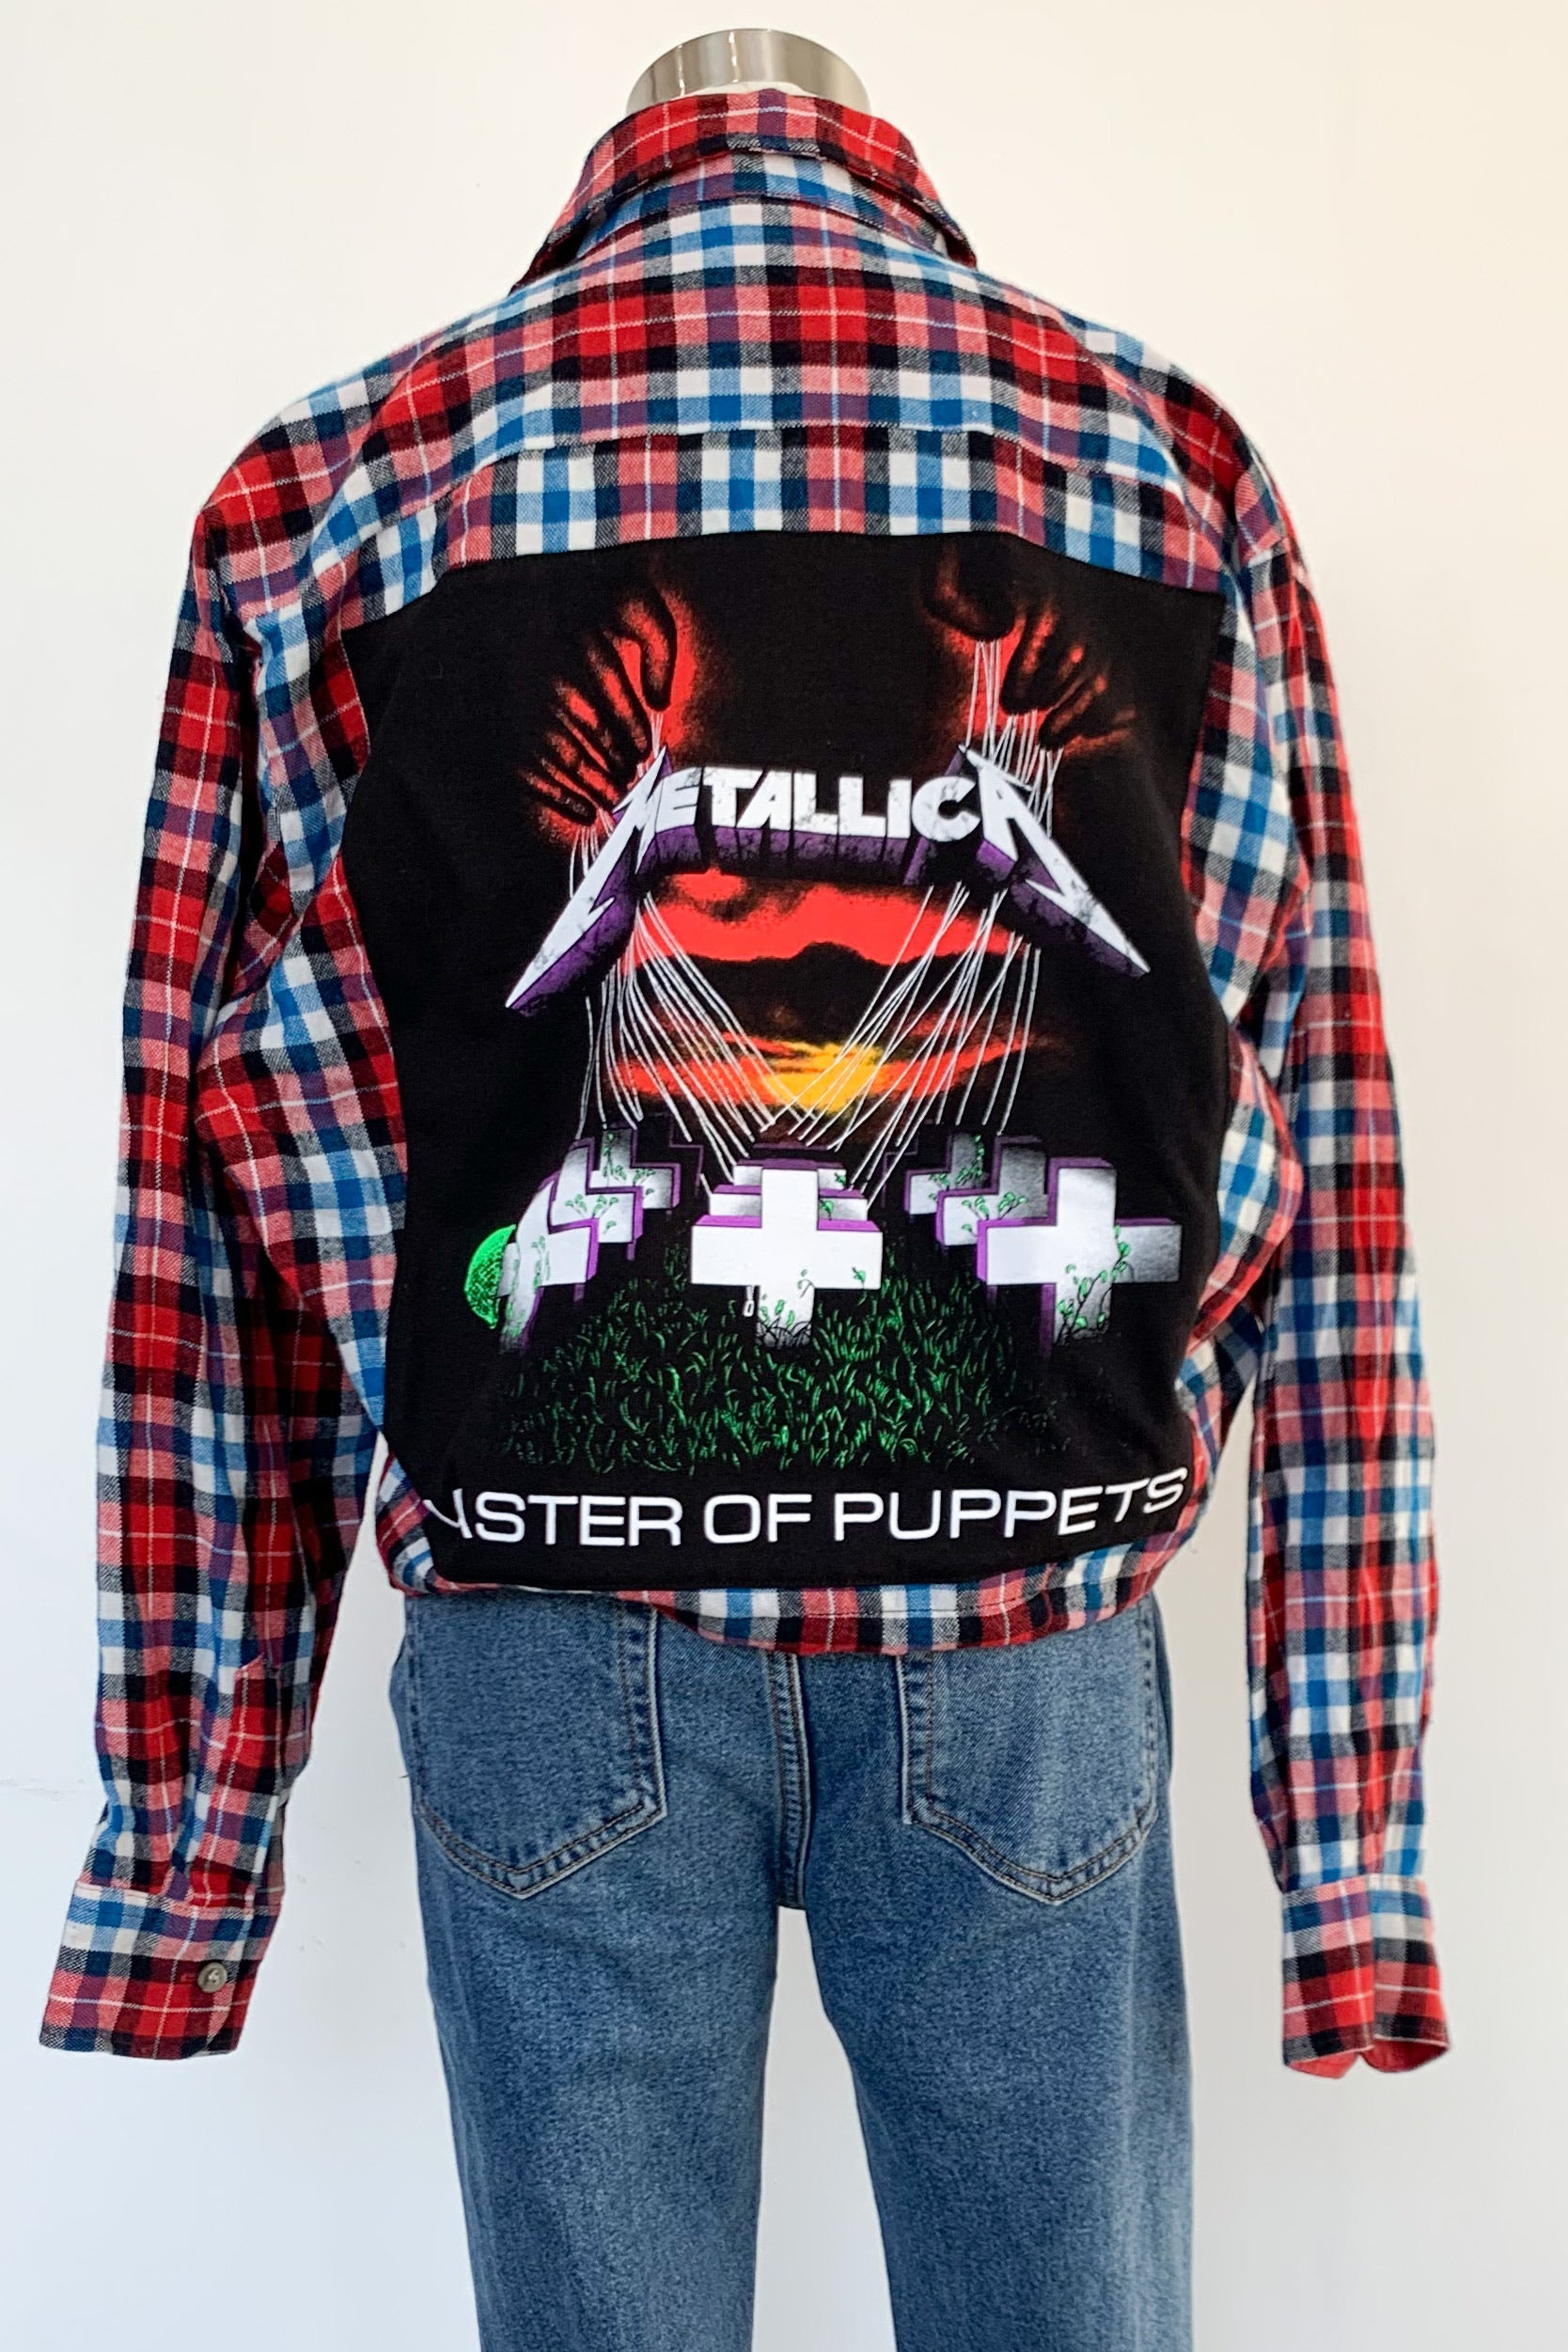 Vintage Cropped Red & Blue Flannel Jacket-Metallica